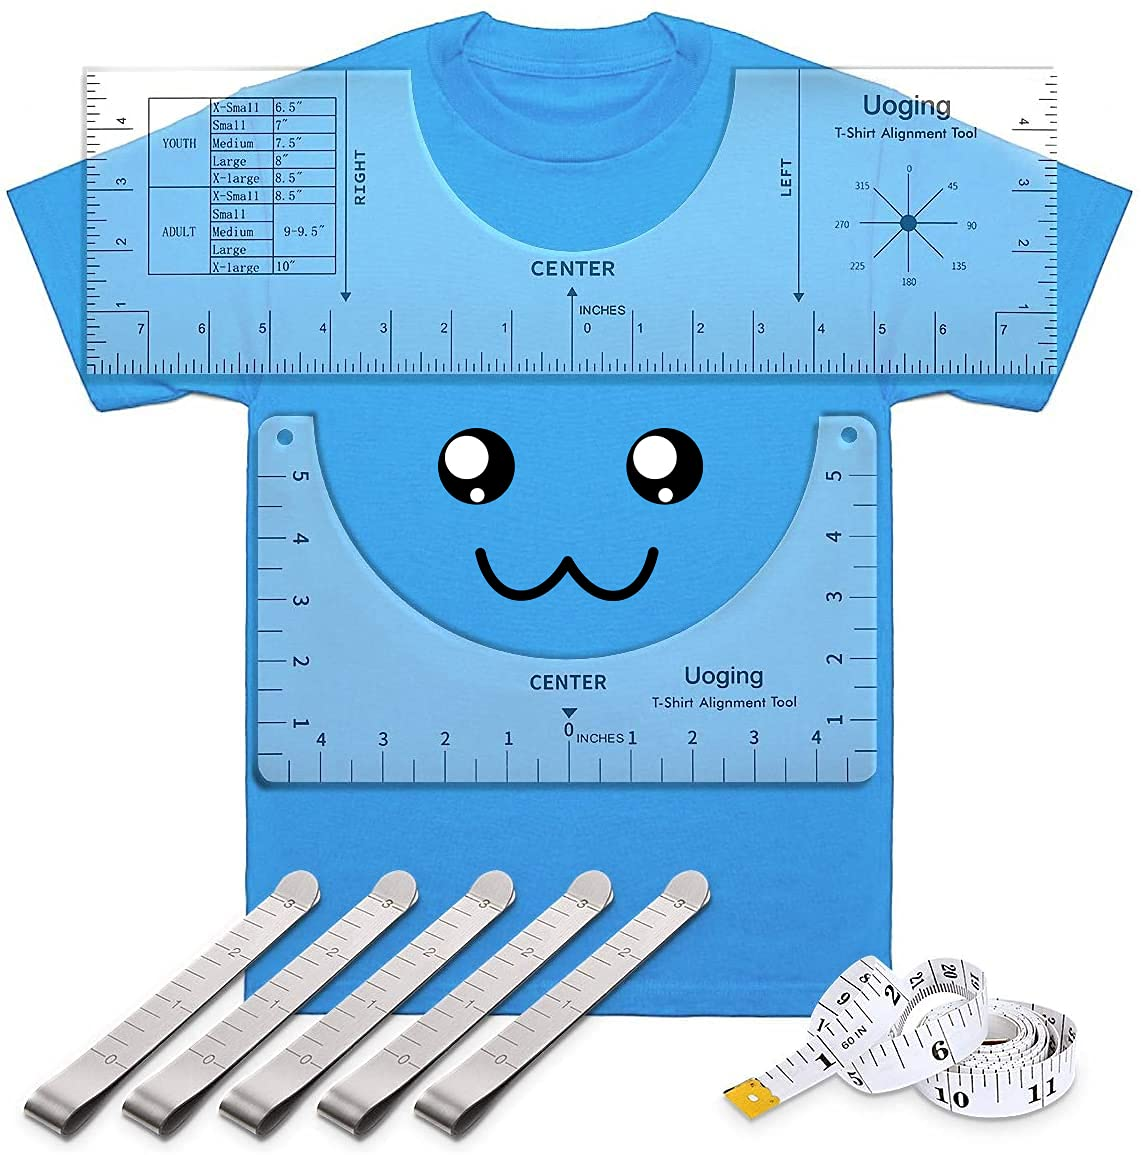 8 Pcs T-Shirt Ruler Guide Max 56% OFF Center Popular brand to Des Alignment